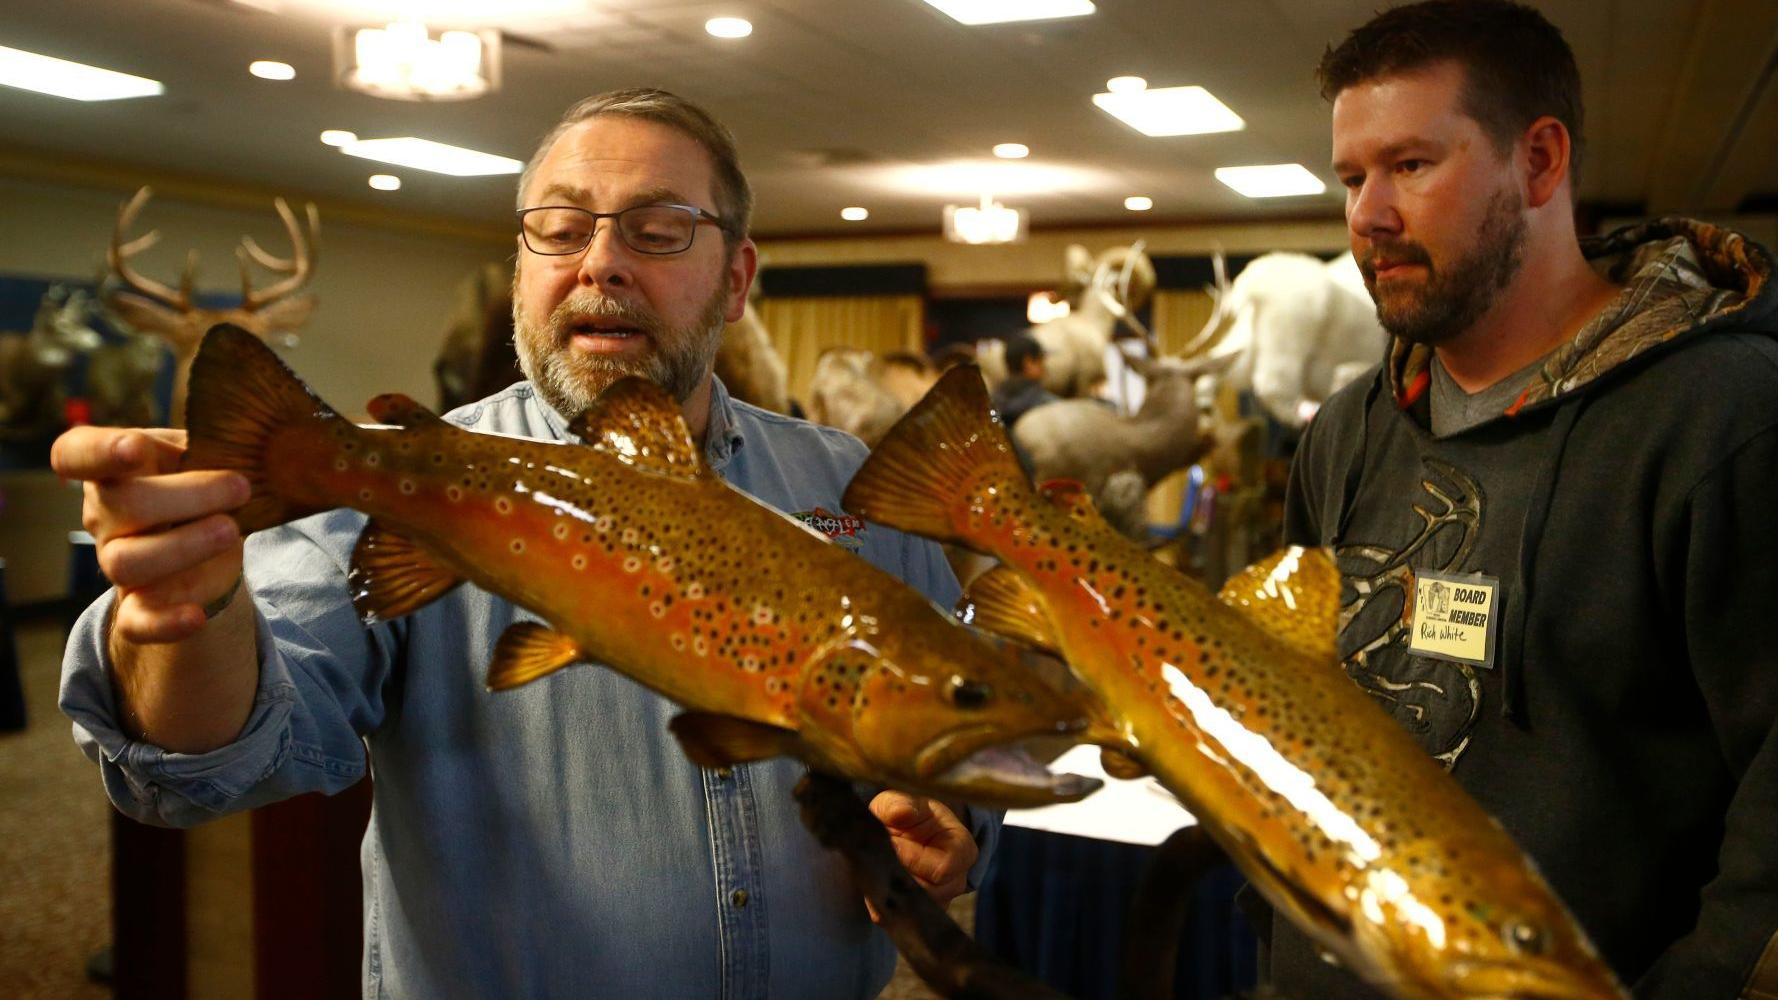 A menagerie of animals take over Billings at state taxidermy convention